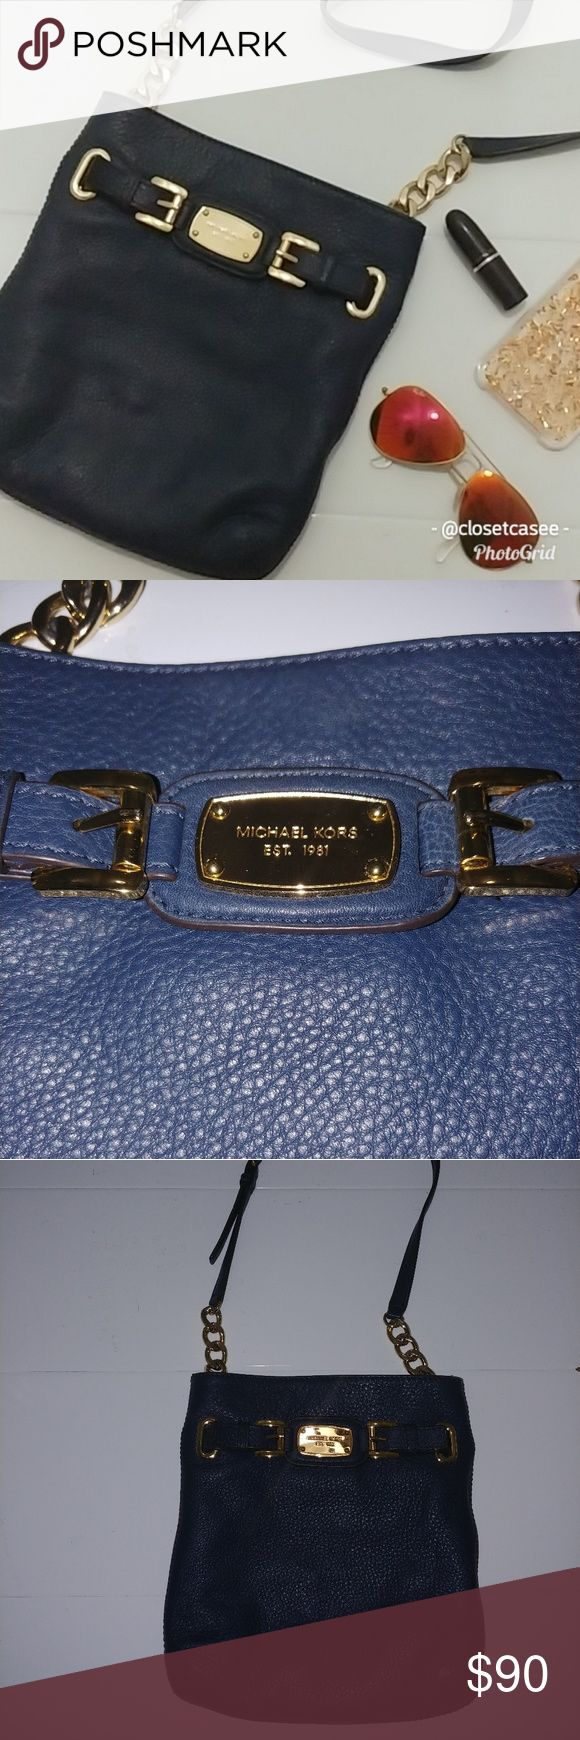 MICHAEL KORS Hamilton Leather Large Crossbody Bag MichaeL KORS Hamilton Leather Large Crossbody Bag *Authentic* Used for about a month, excellent condition! Please see photos for condition.The inside shows some very minor wear, from makeup and such but has be cleaned. Color is dark BLUE  Genuine leather magnetic snap closure Lined interior features zip pocket, 1 open slip pocket Open slip pocket on the back with magnetic snap closure Adjustable leather cross-body strap with gold chain…